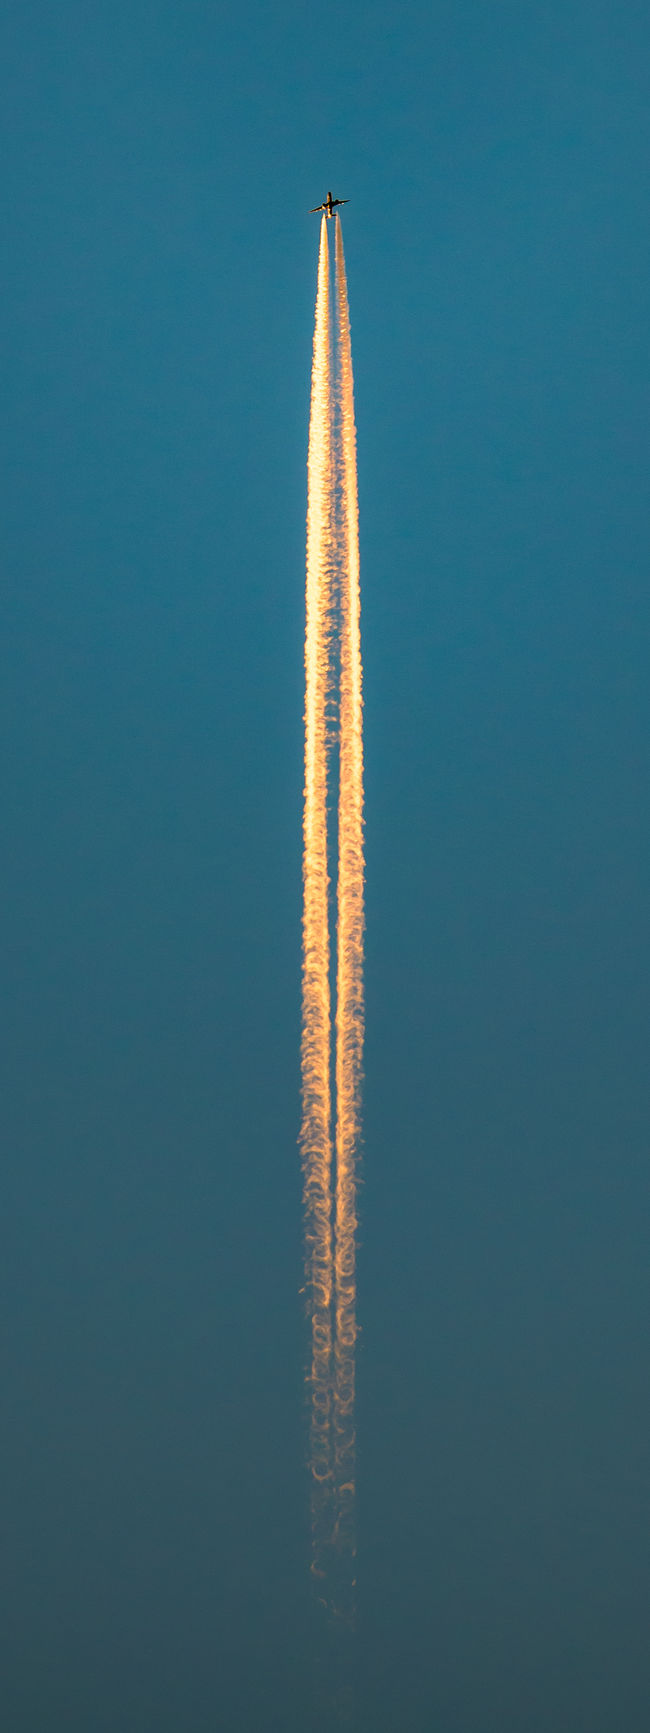 October 2 Year Of Photography 2015 Planes Chemtrails Transport Flying Constantin Brancusi Morning Light Launch Jet Golden Hour Need For Speed